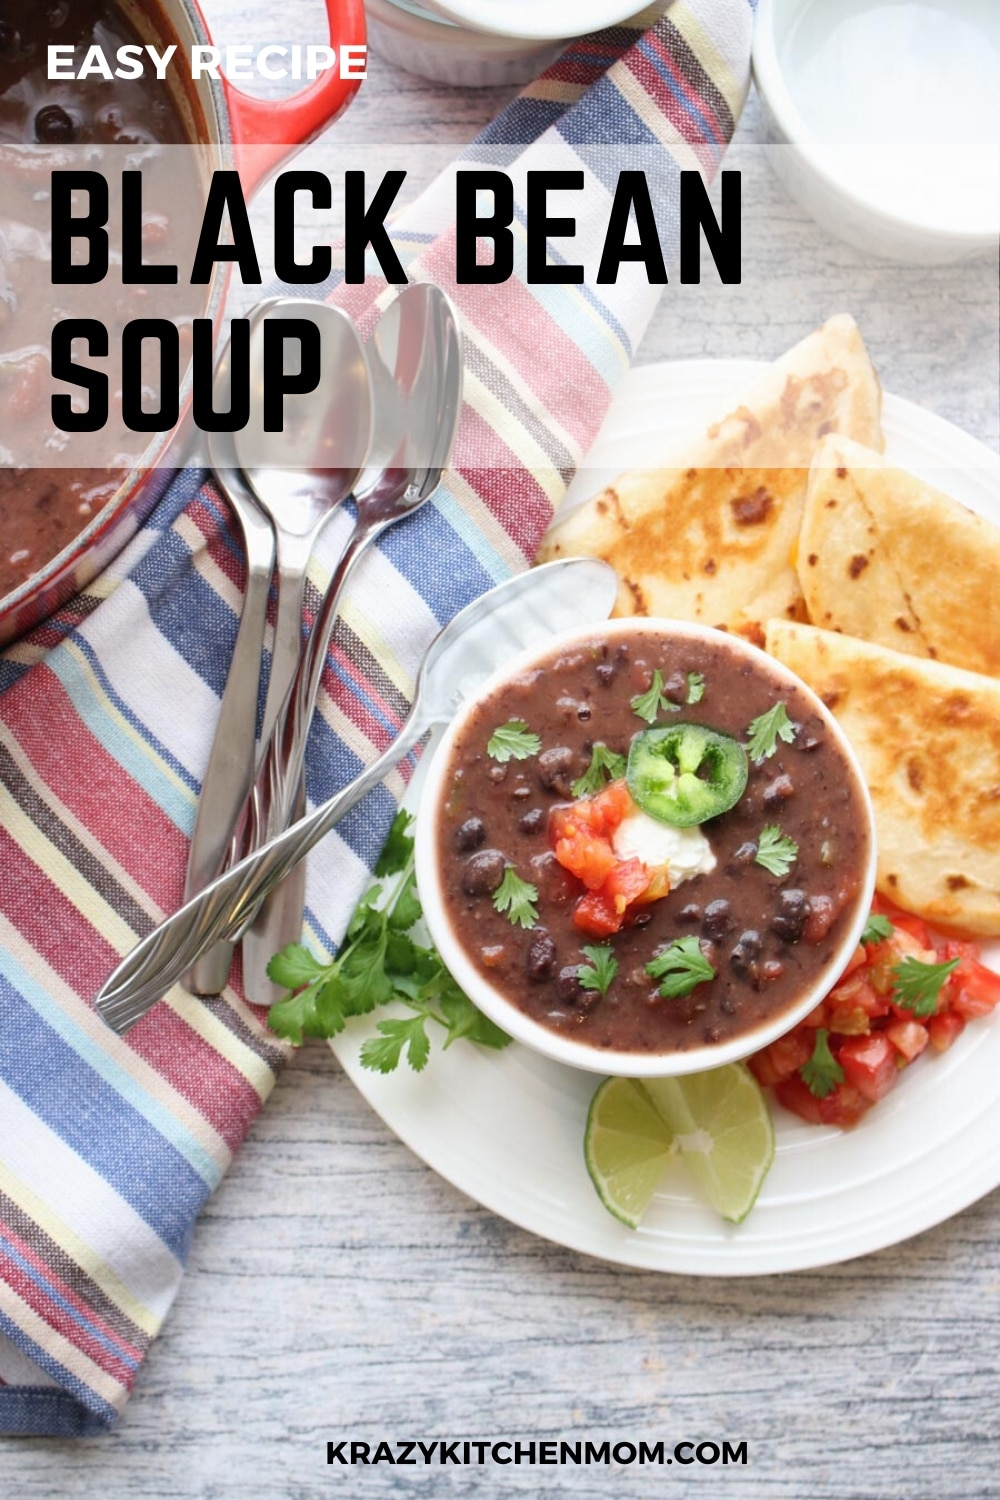 This Black Bean Soup recipe is very easy to make. It uses canned black beans, canned tomatoes and a handful of other ingredients you probably already have in your pantry.  via @krazykitchenmom